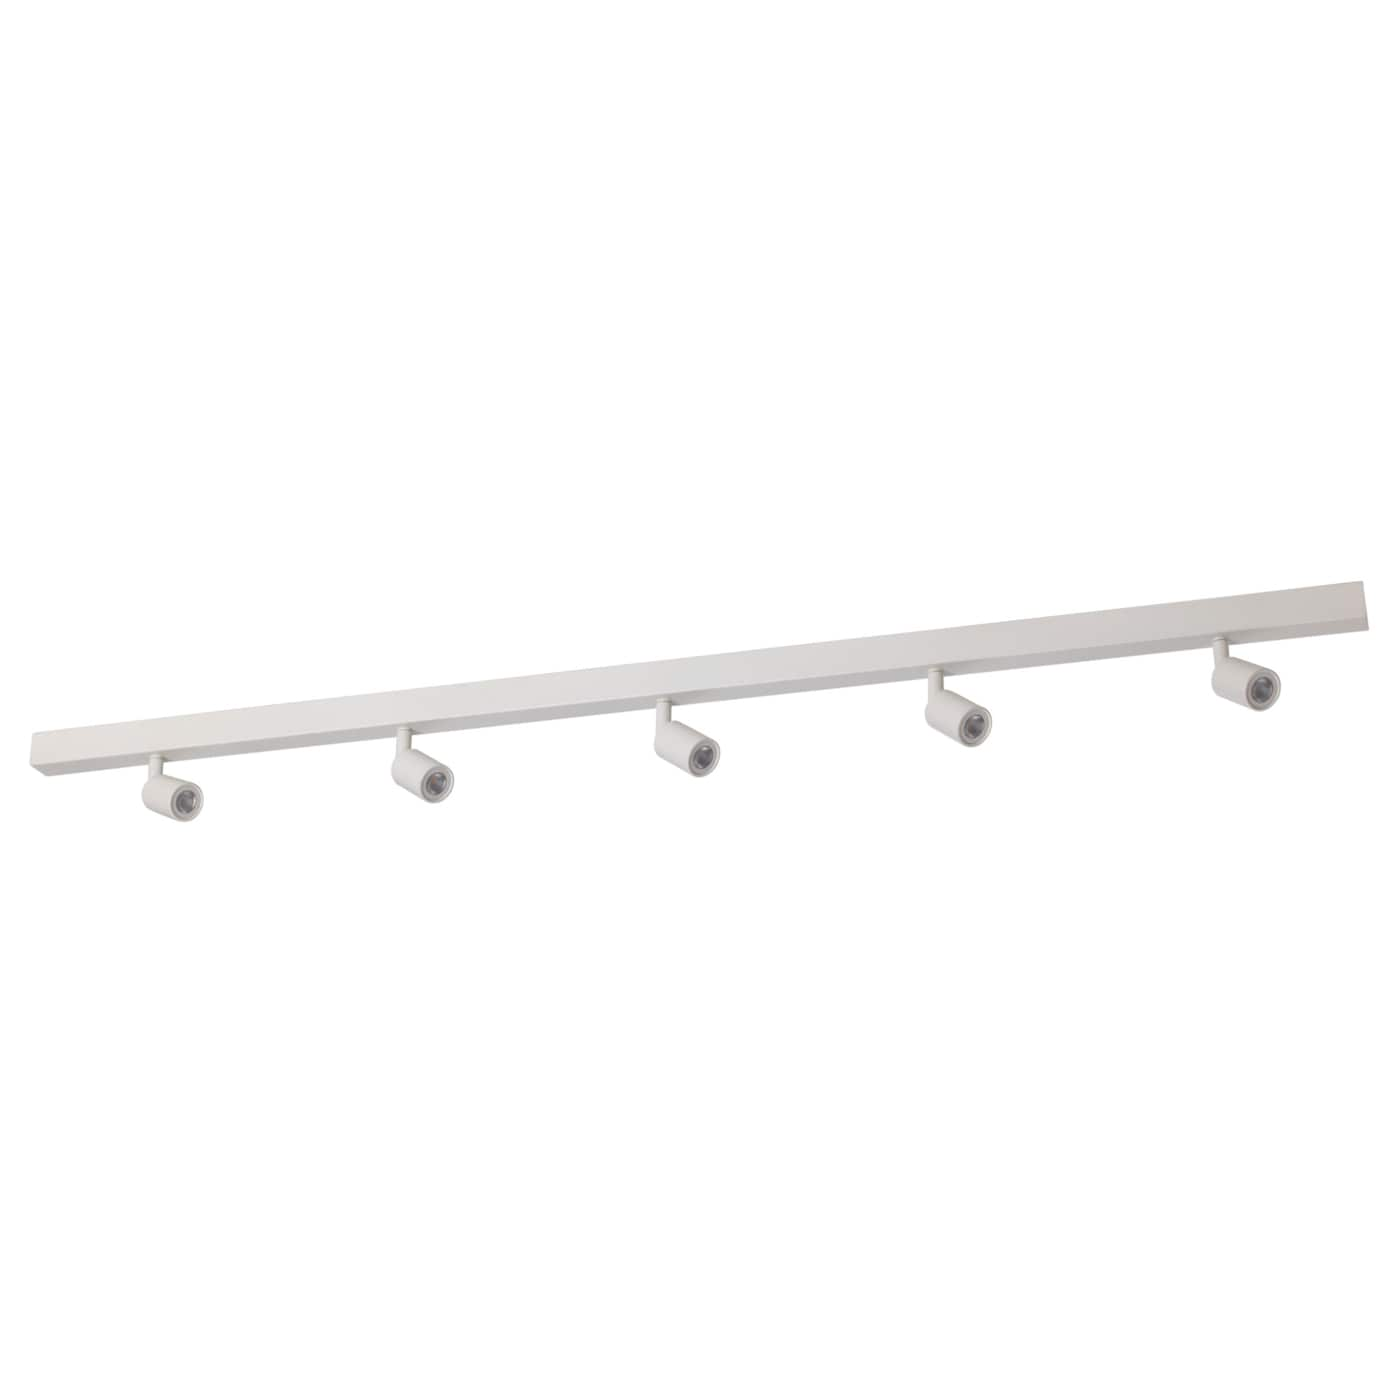 IKEA BÄVE LED ceiling track, 5-spots